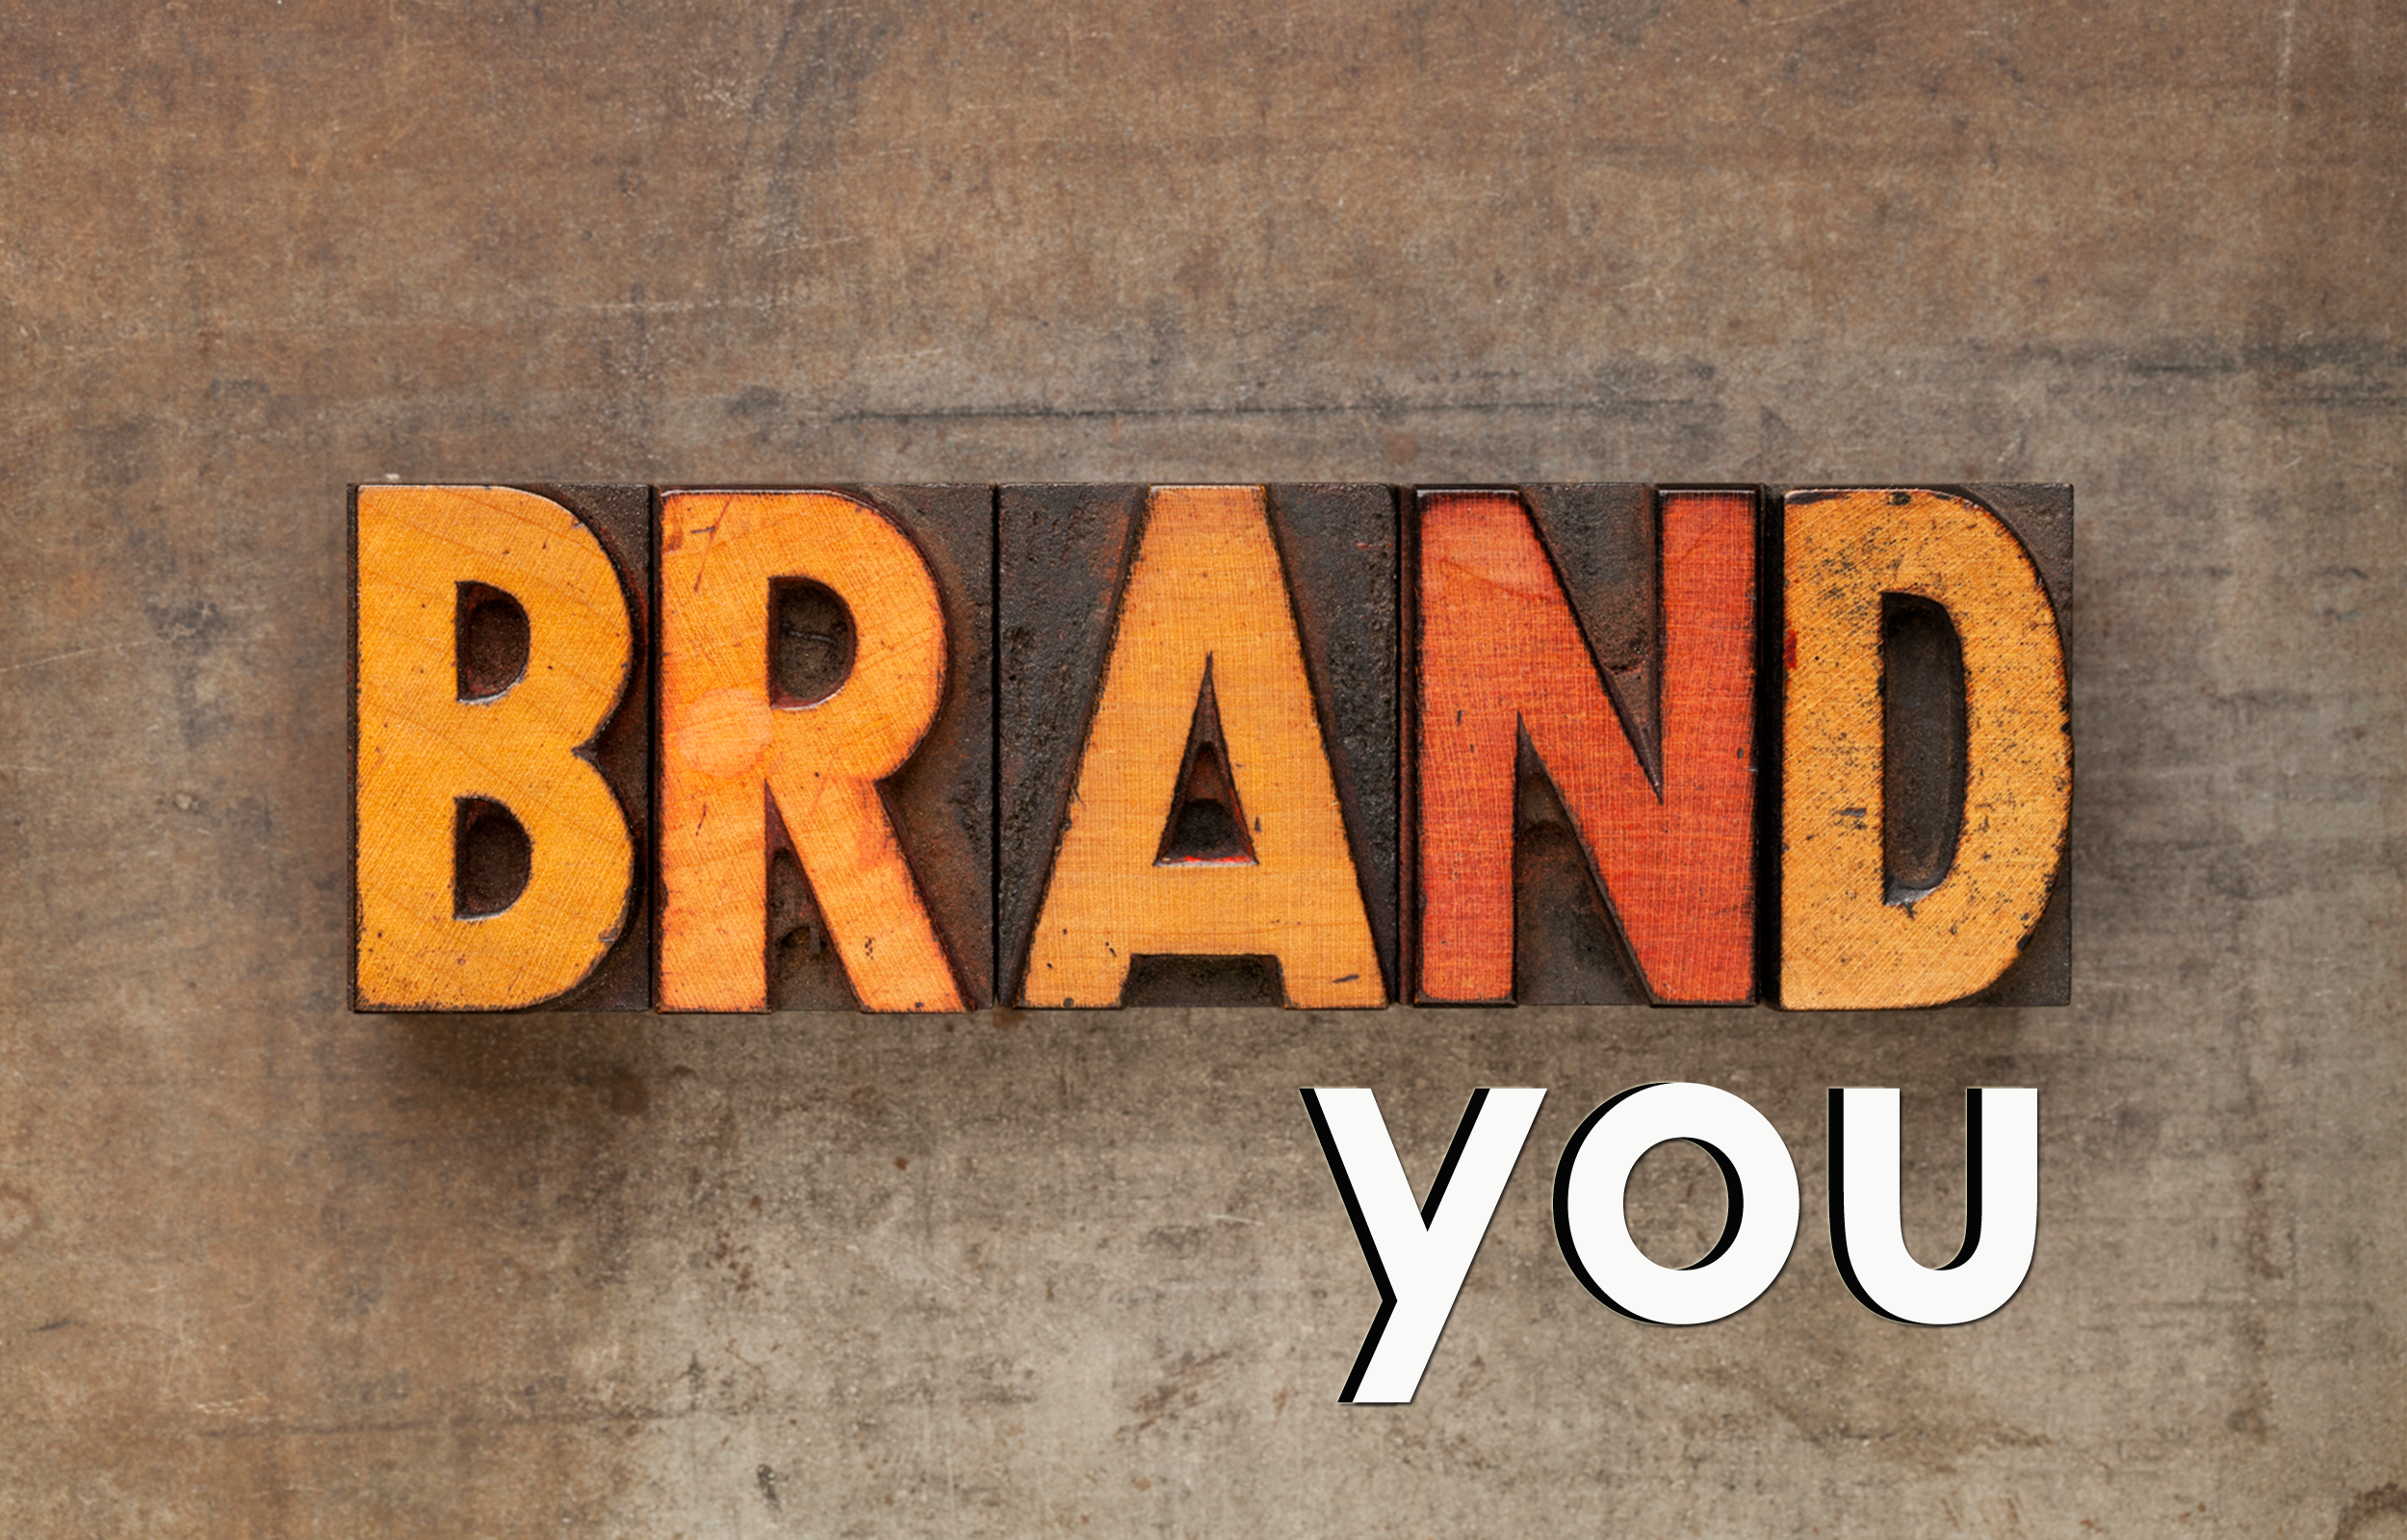 brand you A positioning statement helps you make key decisions that affect your customer's perception of your brand a tag line is an external statement used in your marketing efforts insights from your positioning statement can be turned into a tagline, but it is important to distinguish between the two.